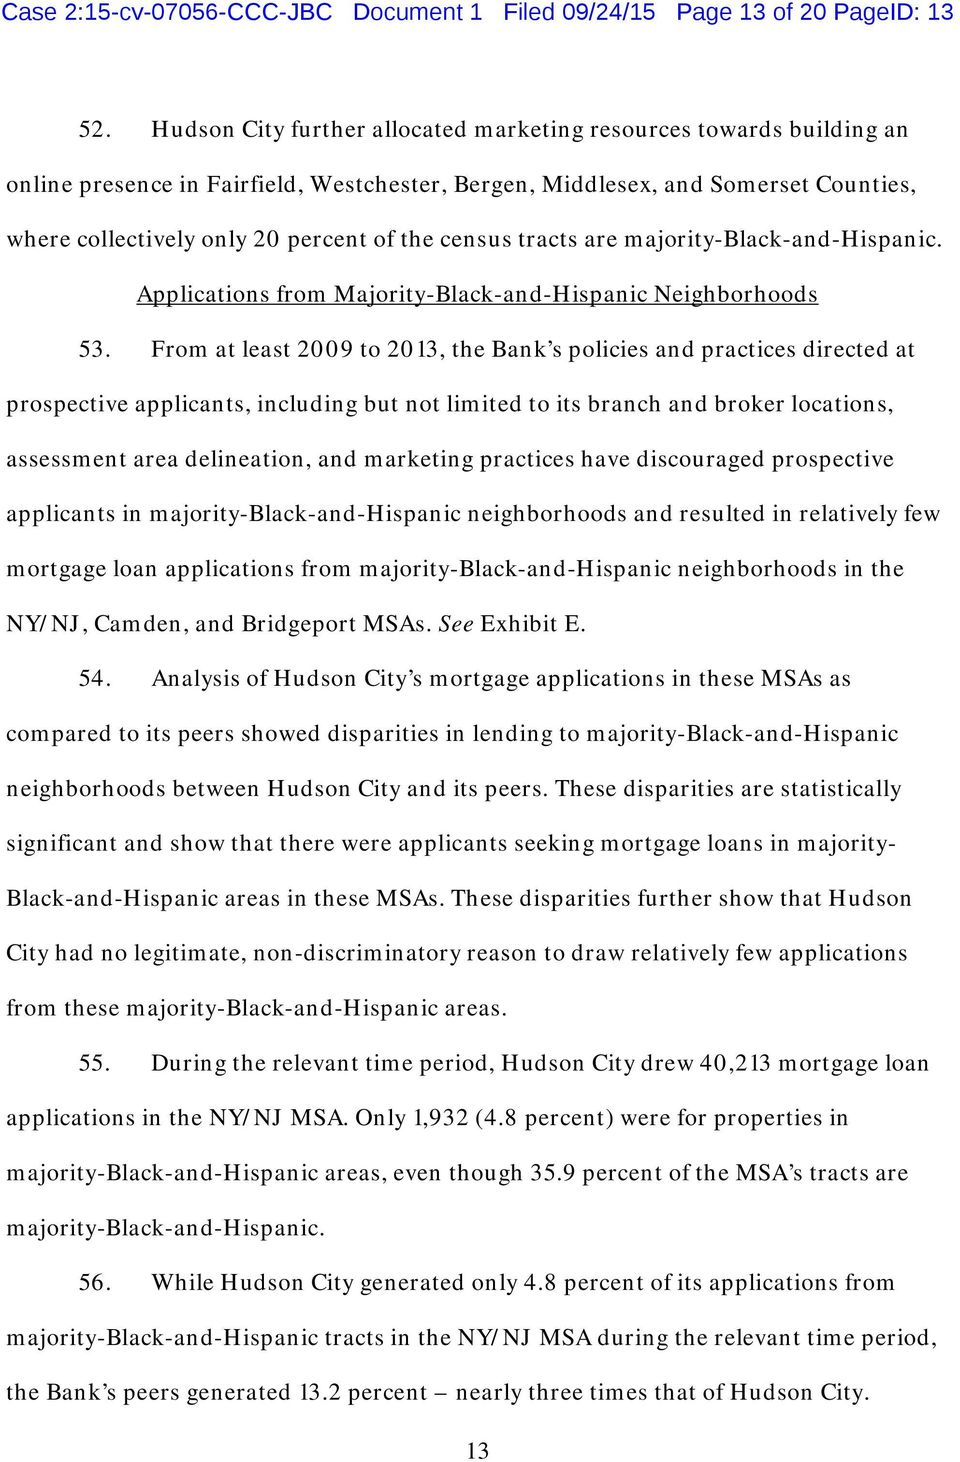 census tracts are majority-black-and-hispanic. Applications from Majority-Black-and-Hispanic Neighborhoods 53.